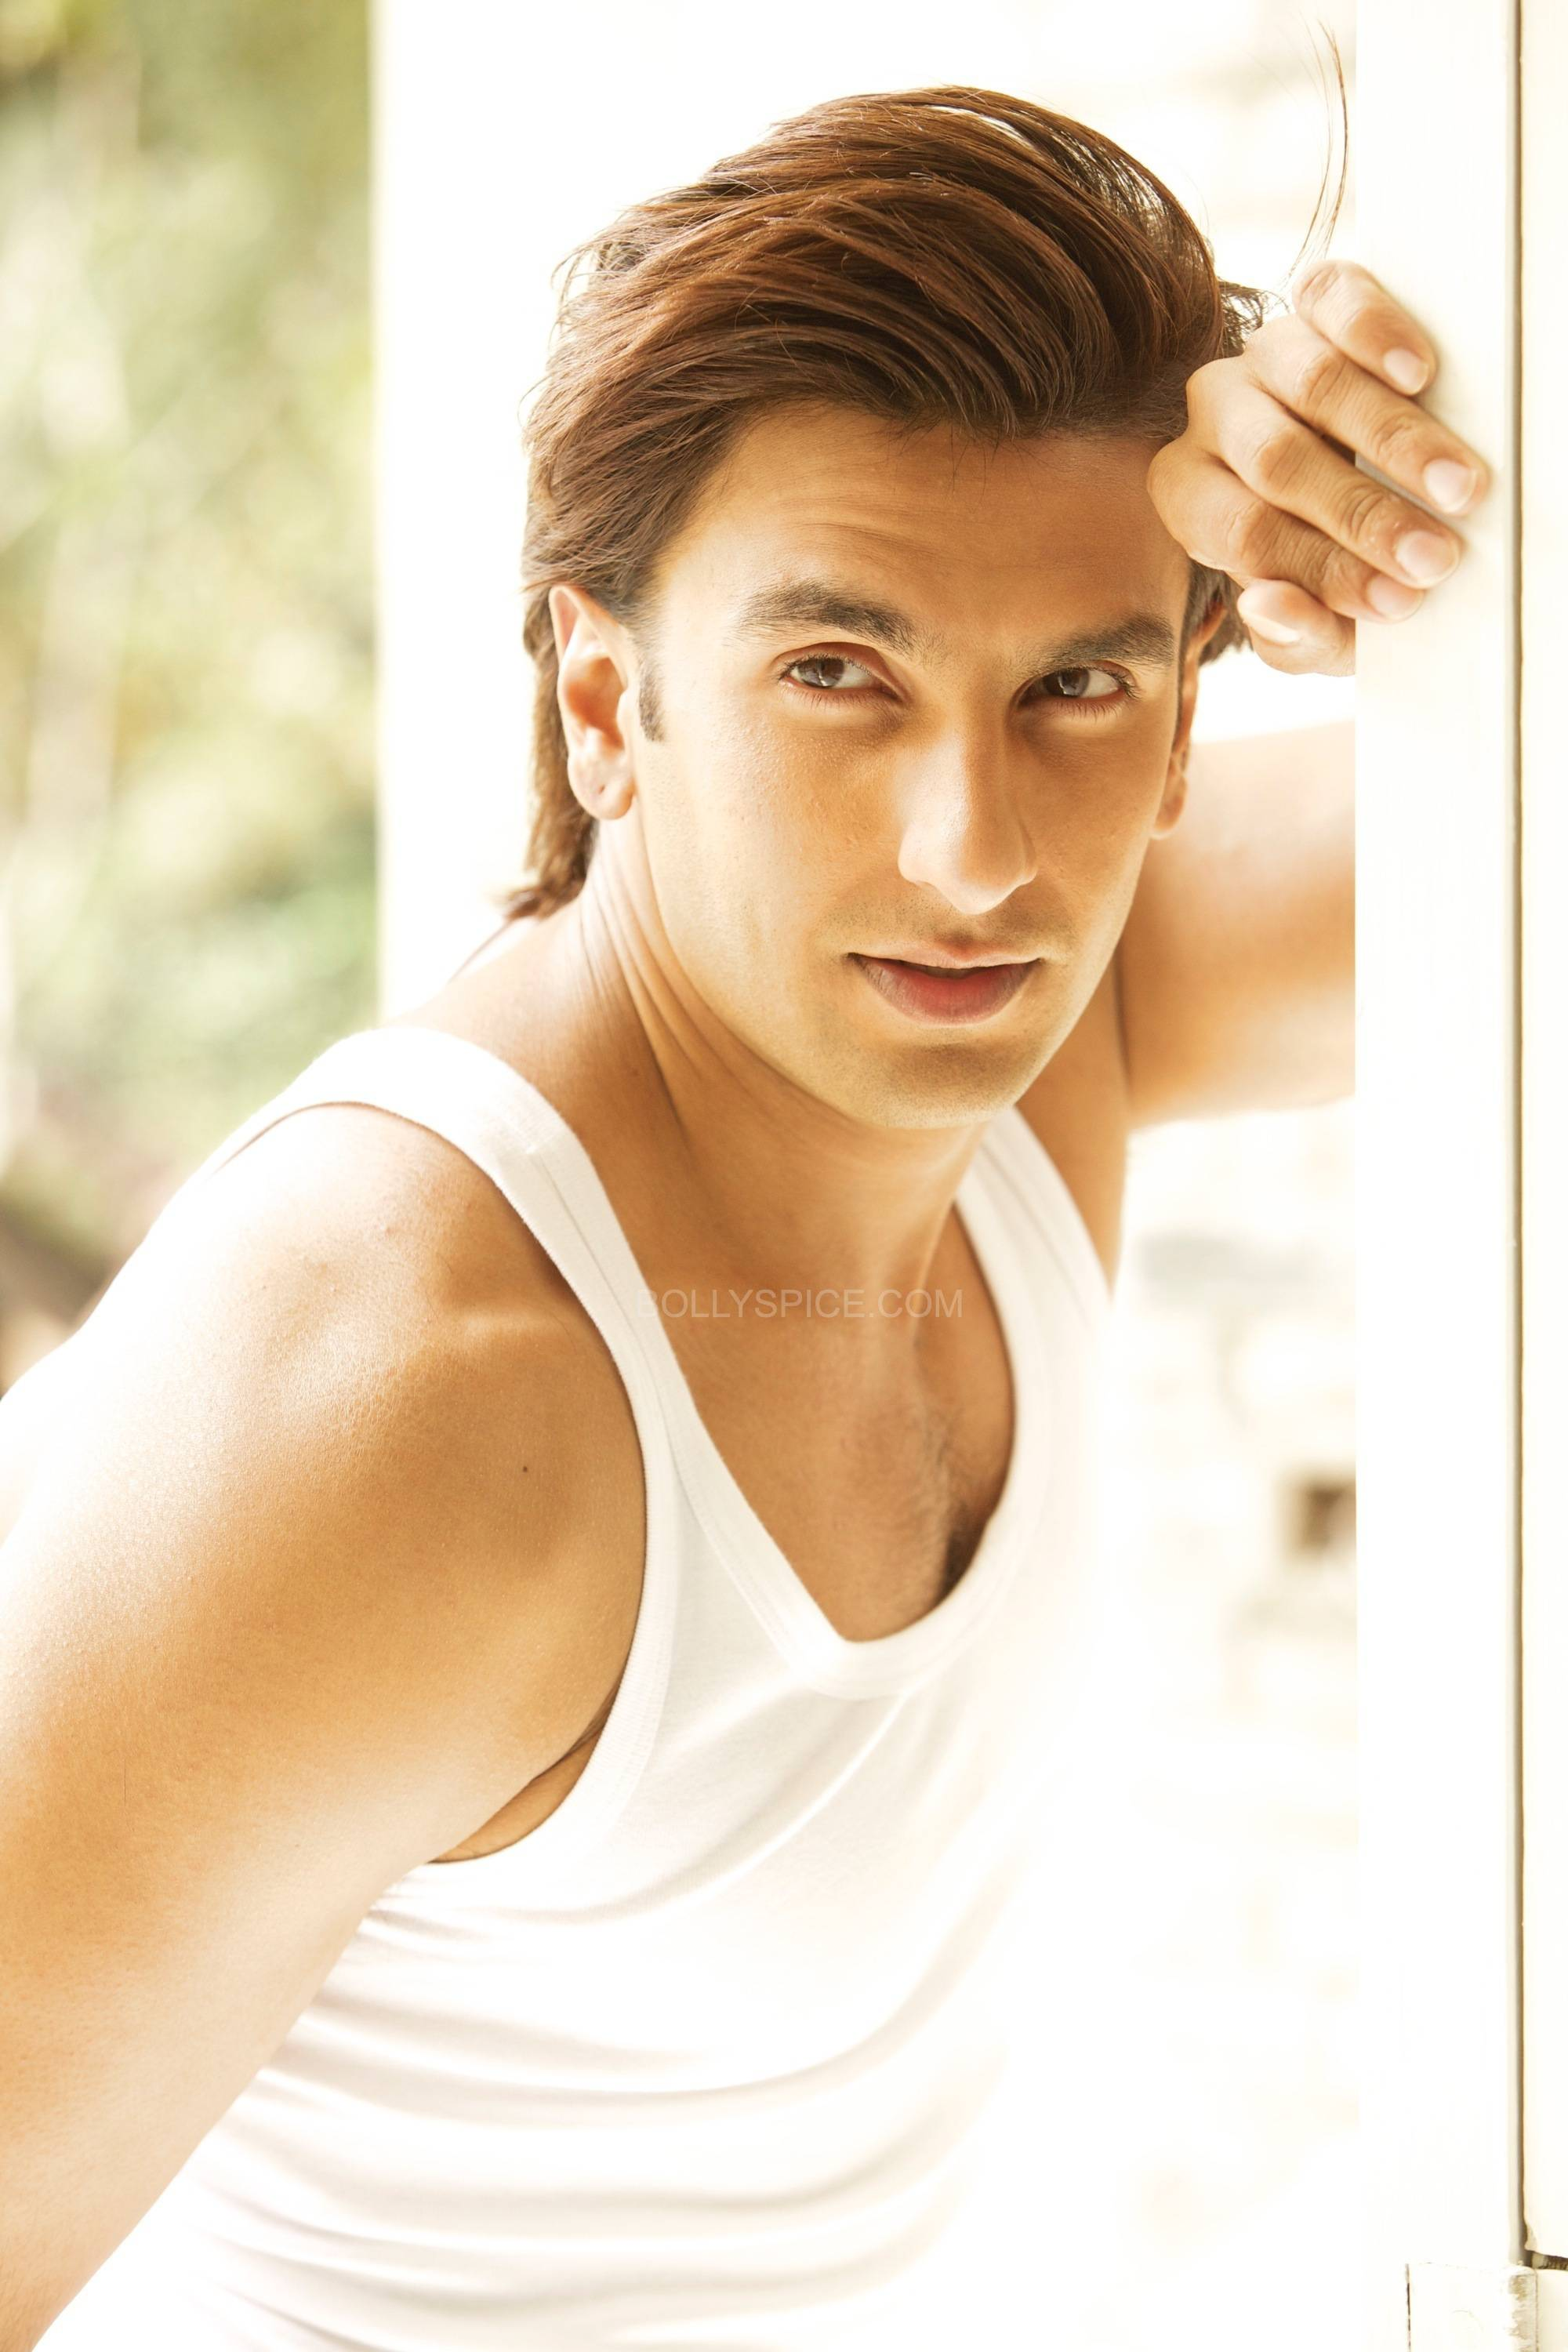 ranveersingh3 Ranveer Singhs new endorsement pushes the envelope!